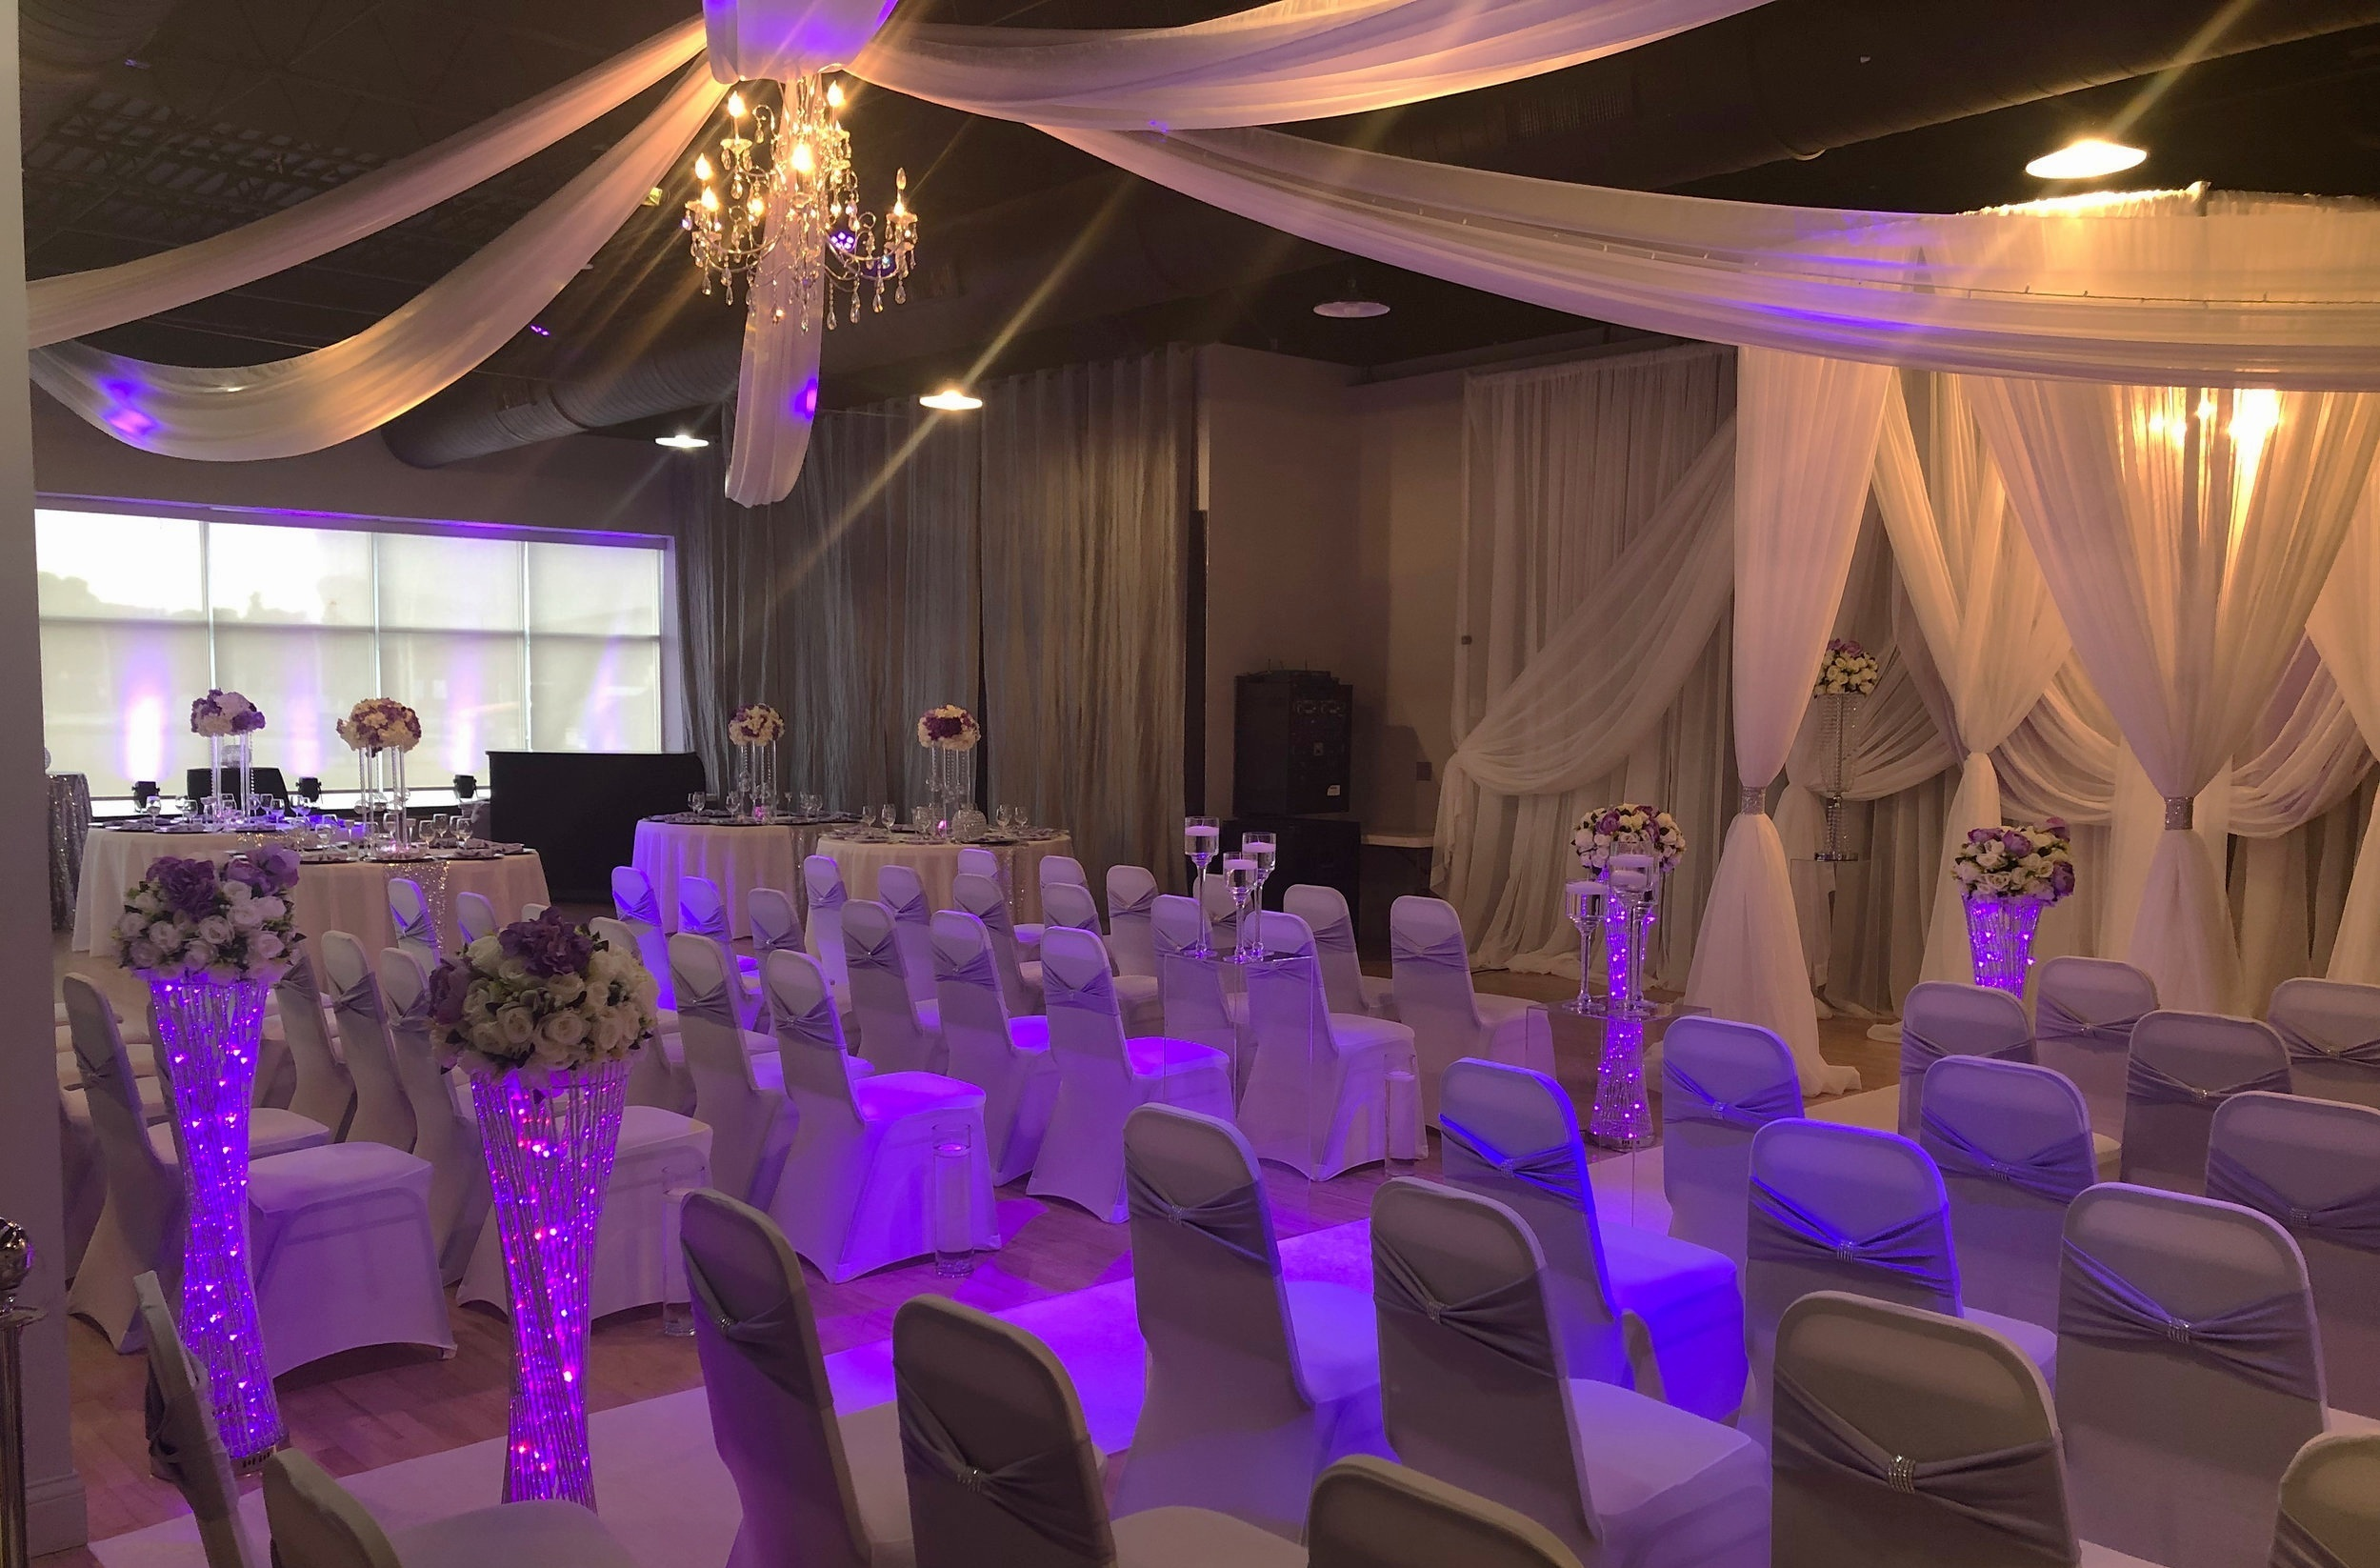 STERLING HALL - Offering 3,500 square feet of event space for up to 140 guests, it's the perfect choice for more intimate celebrations and gatherings.